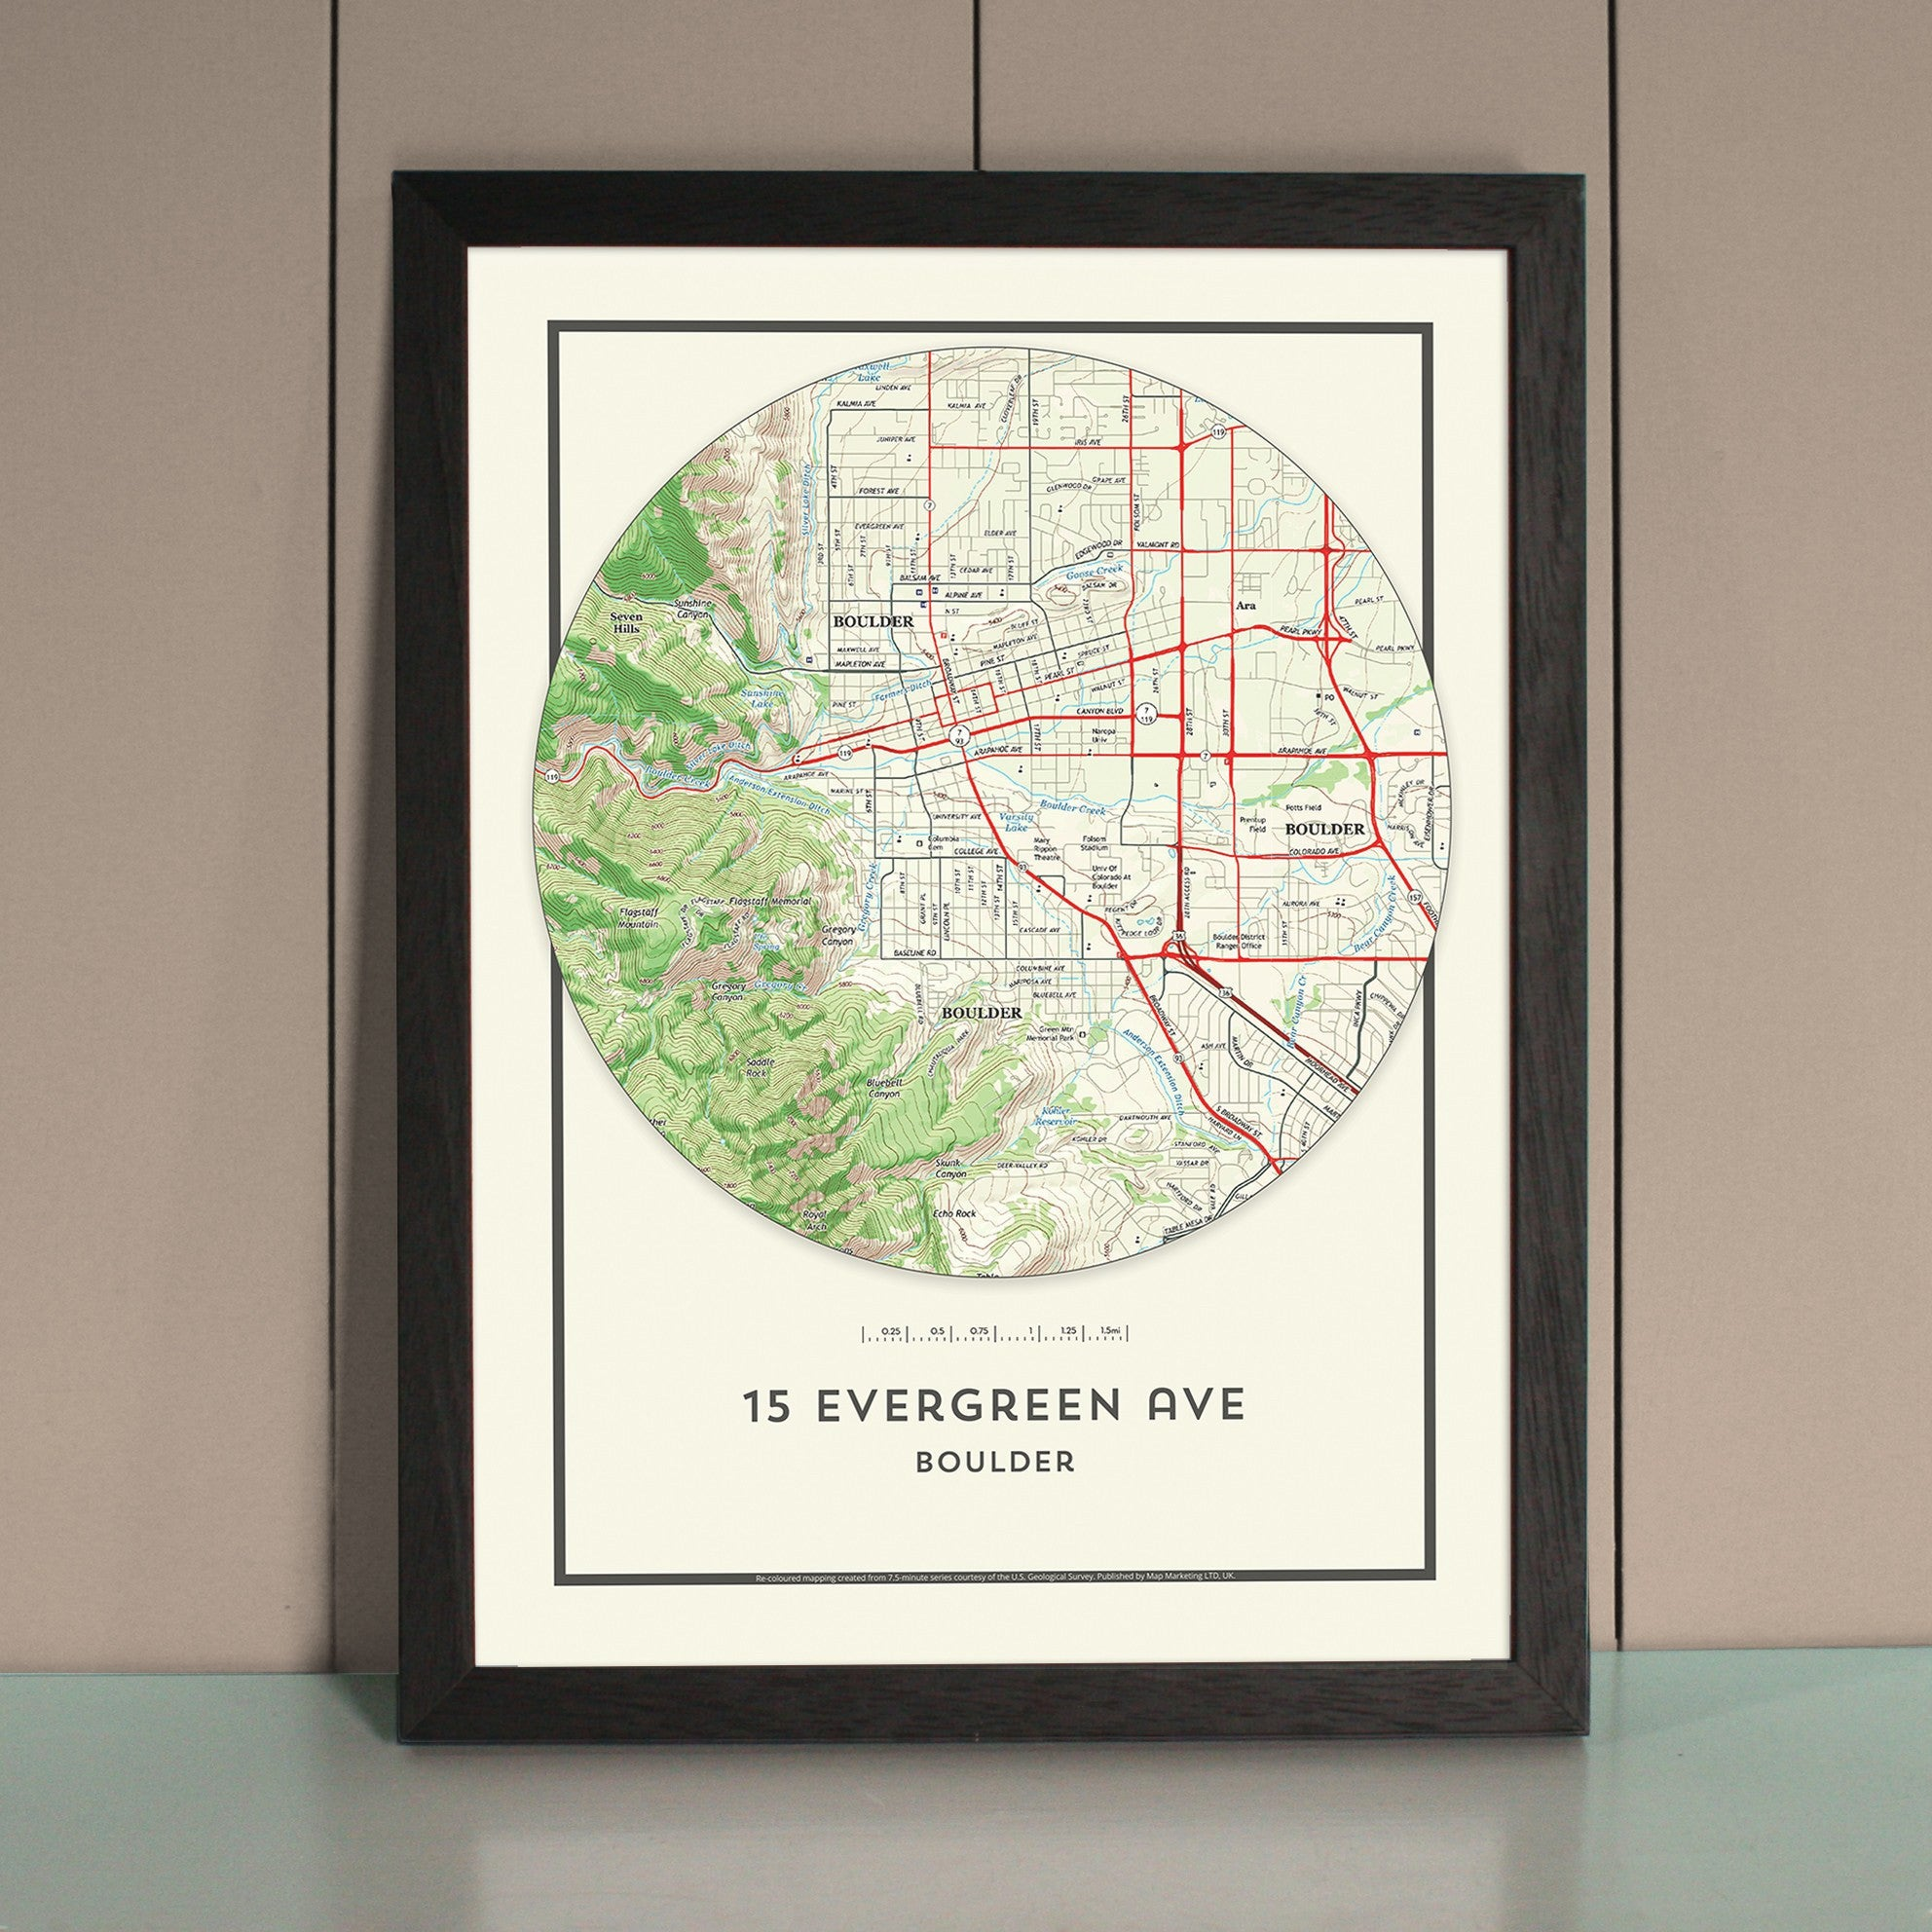 My Home In The Center Personalized Framed Us Map Circle